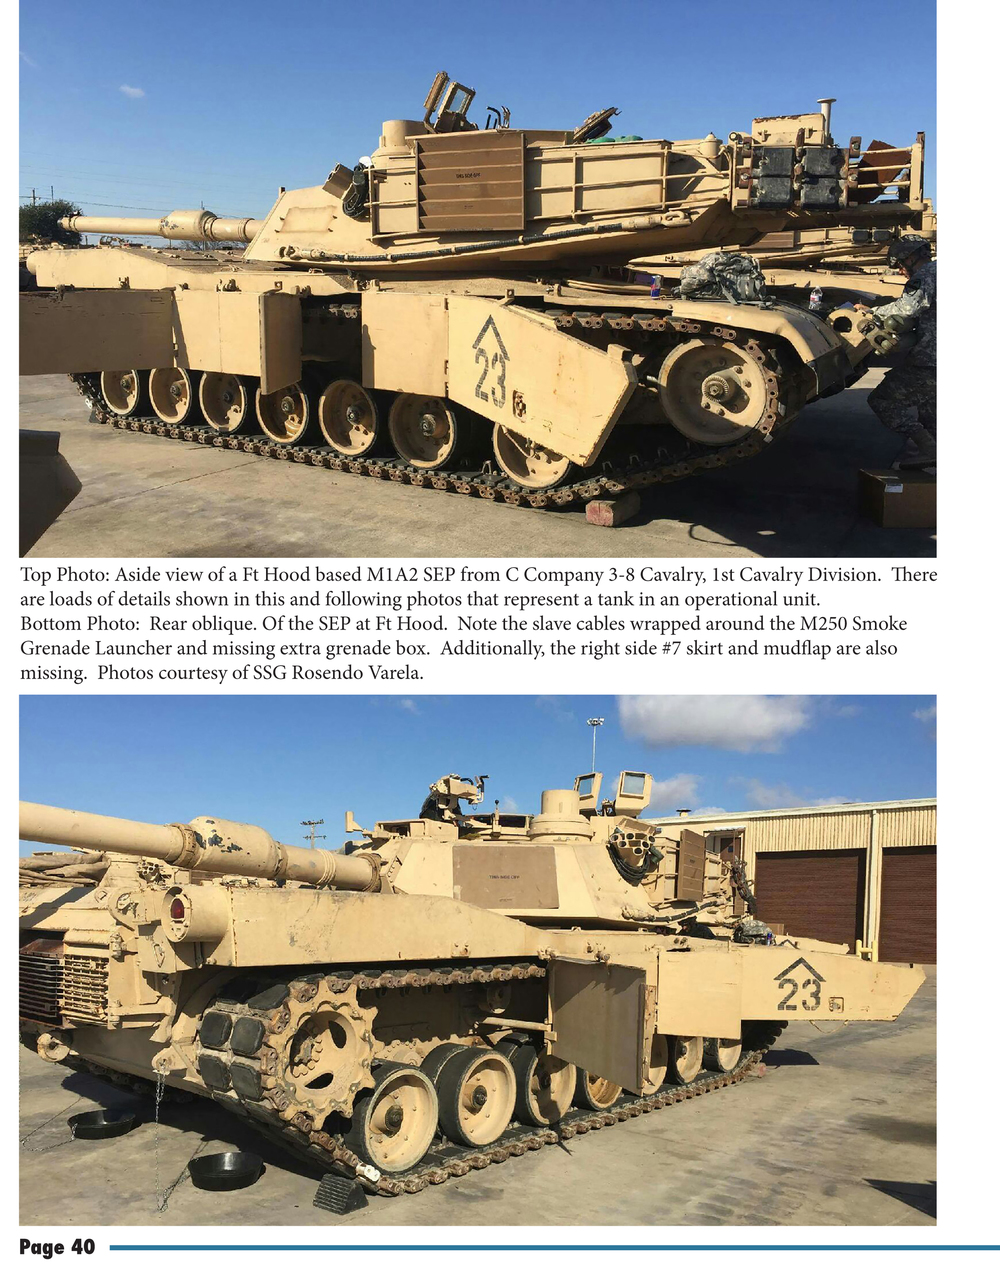 A multiple view look at an M1A2 SEP without any TUSK armor starts things off.